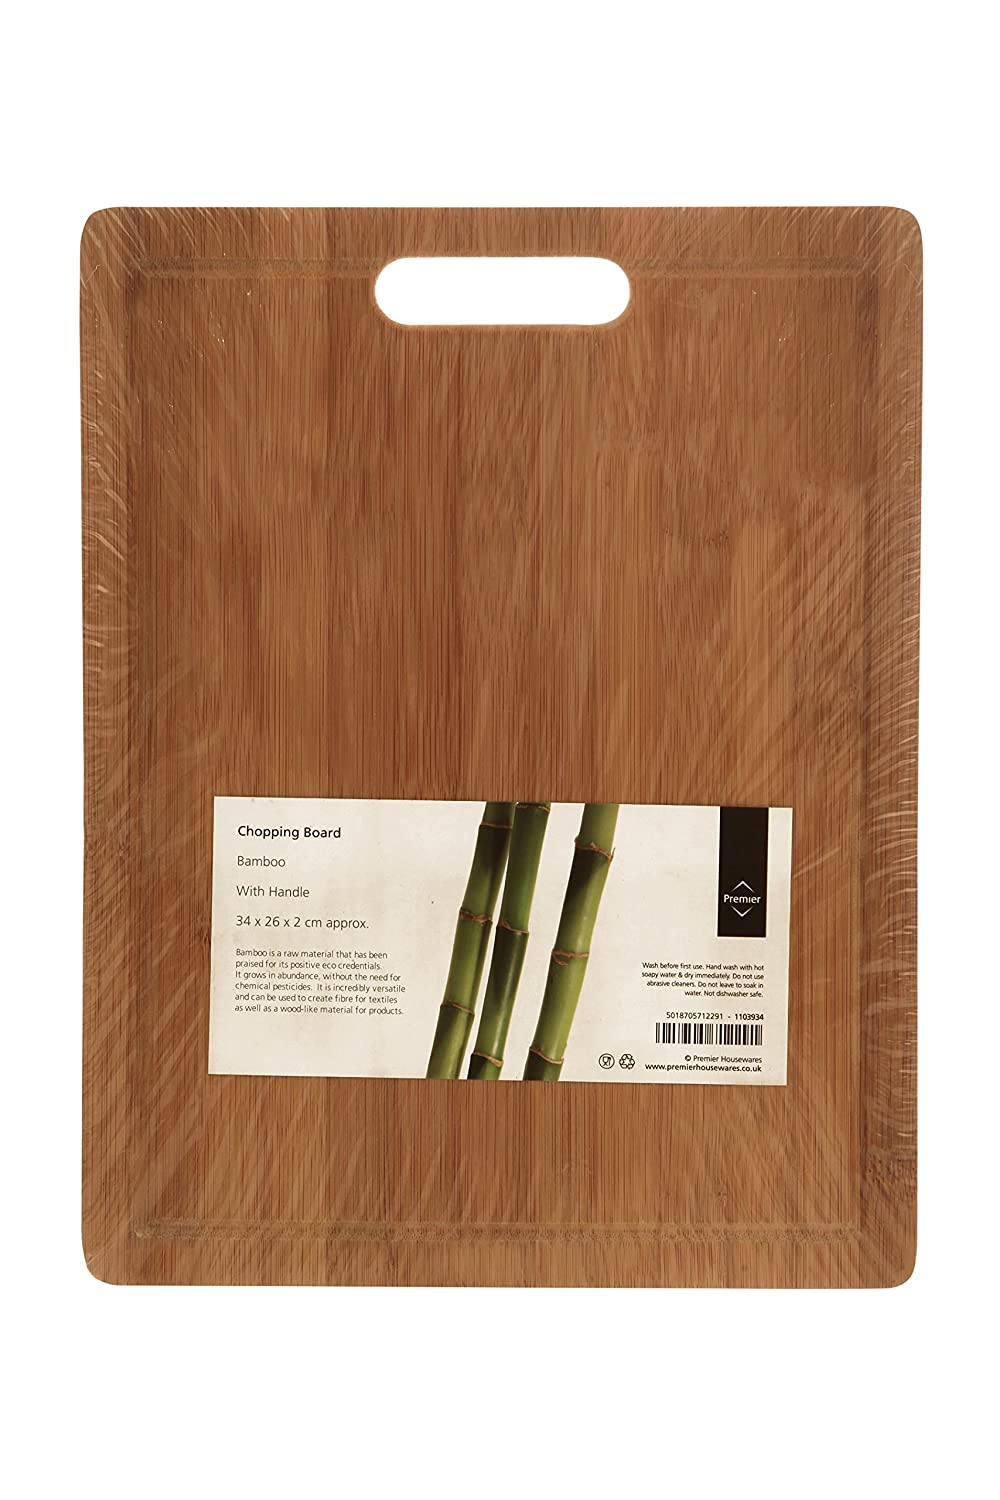 The item for sale is premier set of 5 coloured flexible chopping - Premier Housewares Chopping Board With Handle 34 X 26 Cm Bamboo Amazon Co Uk Kitchen Home